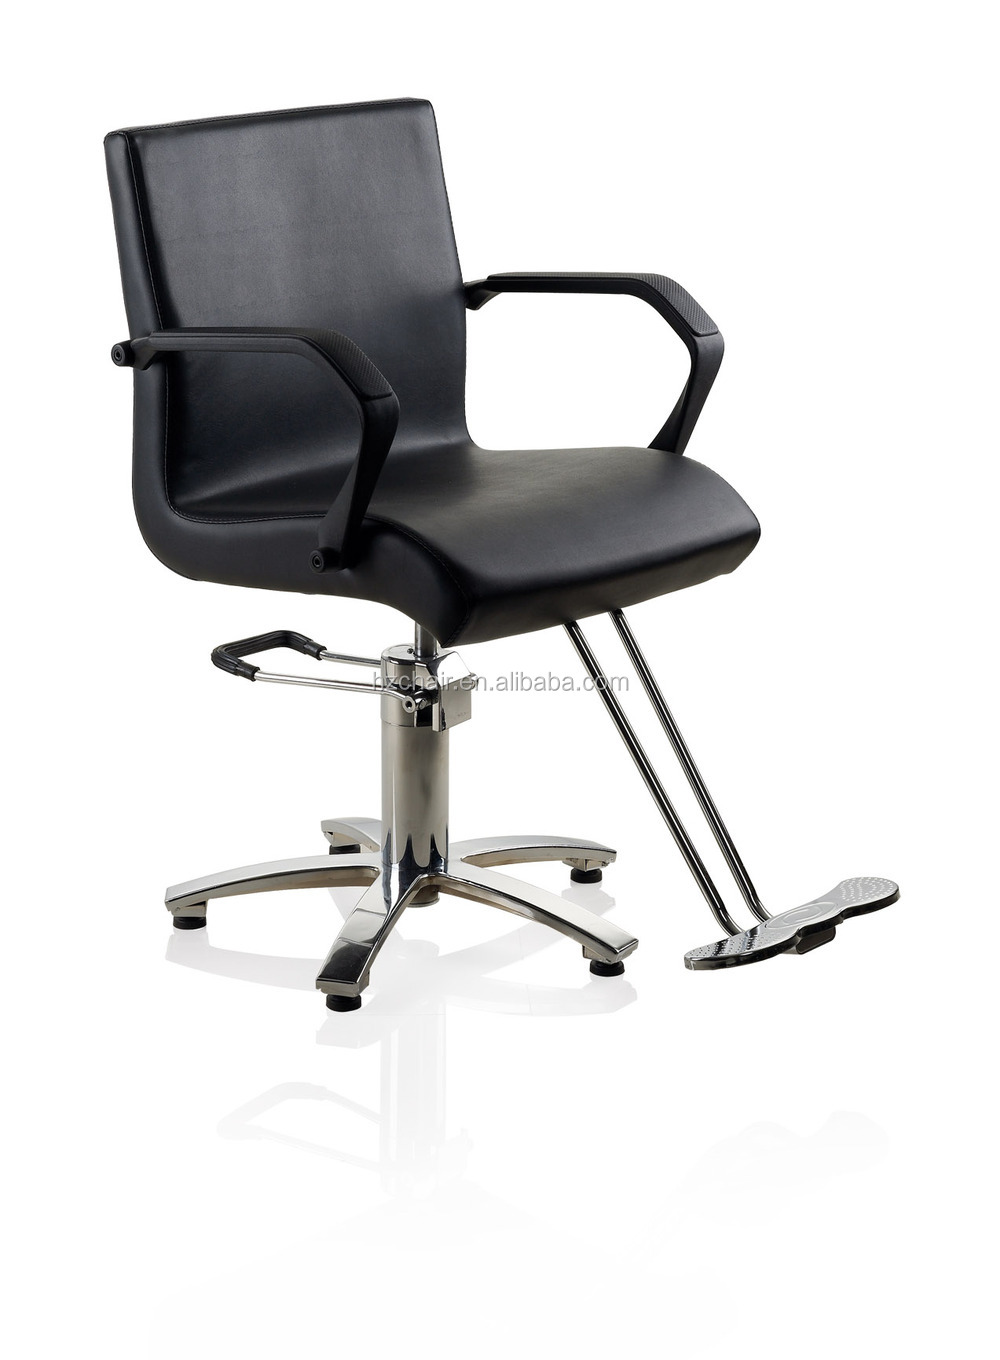 Professional hair bravo salon styling chair unique high for Beauty salon furniture suppliers